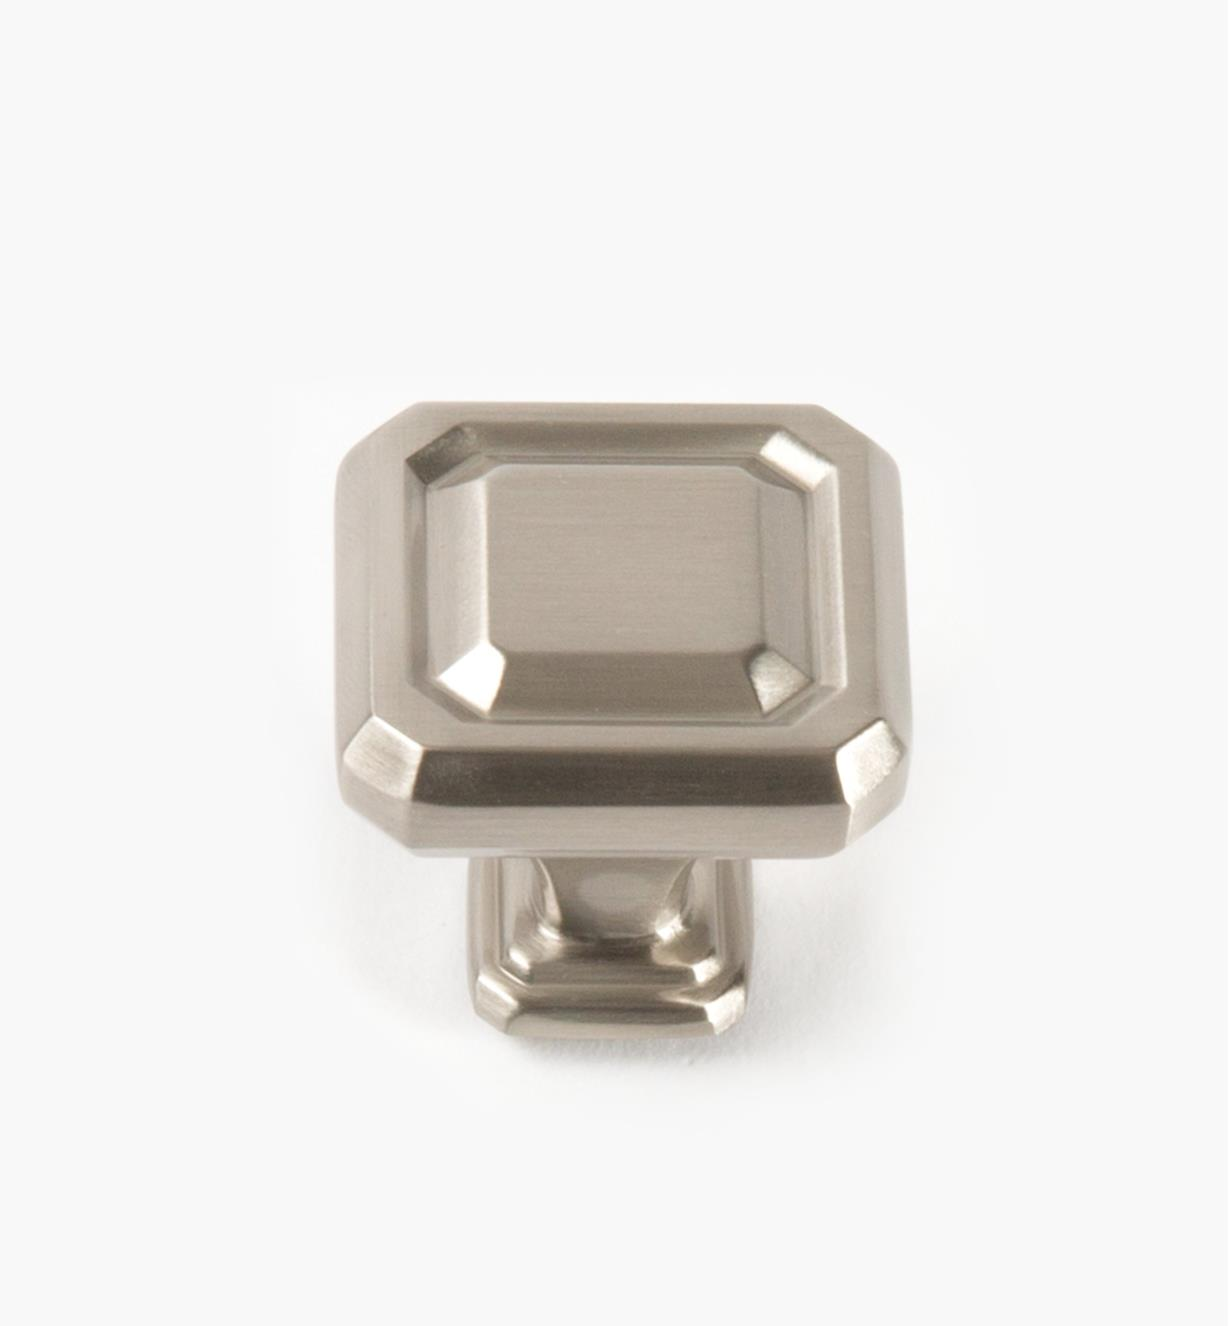 02A1625 - Wells Satin Nickel 32mm x 32mm Knob, each